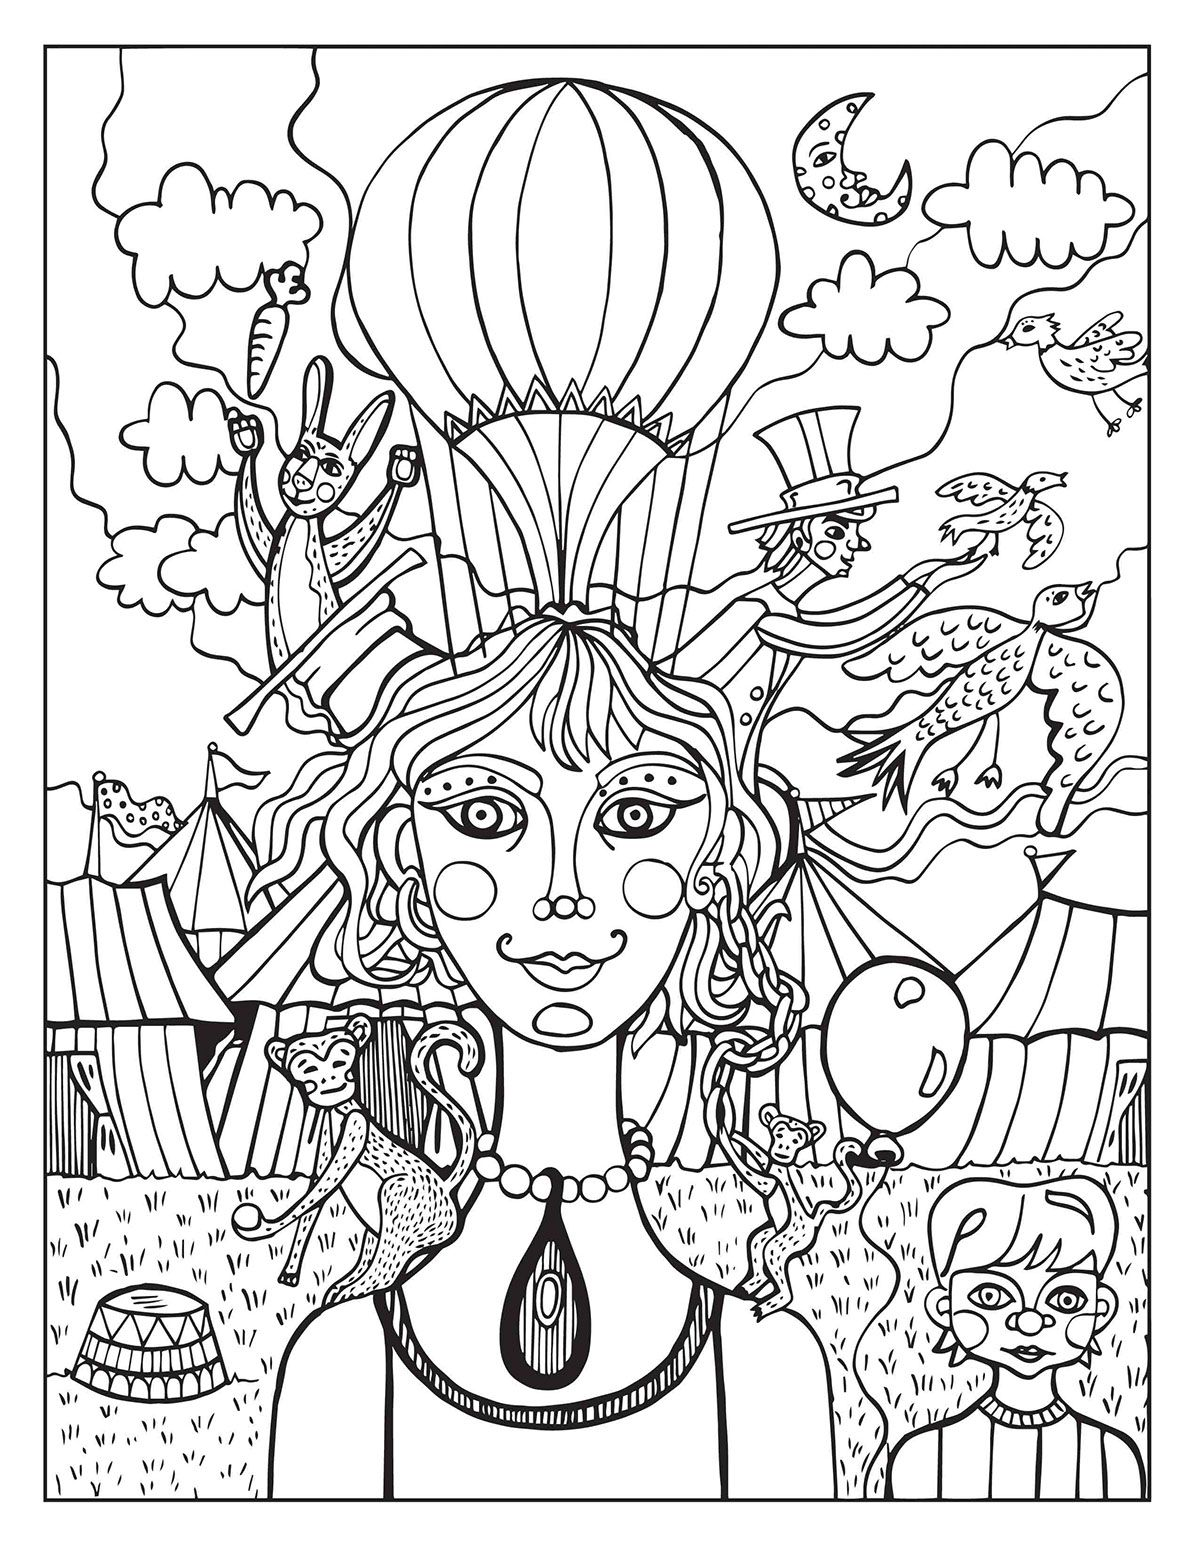 Circus Coloring Page Free Coloring Pages Download | Xsibe carnival ...